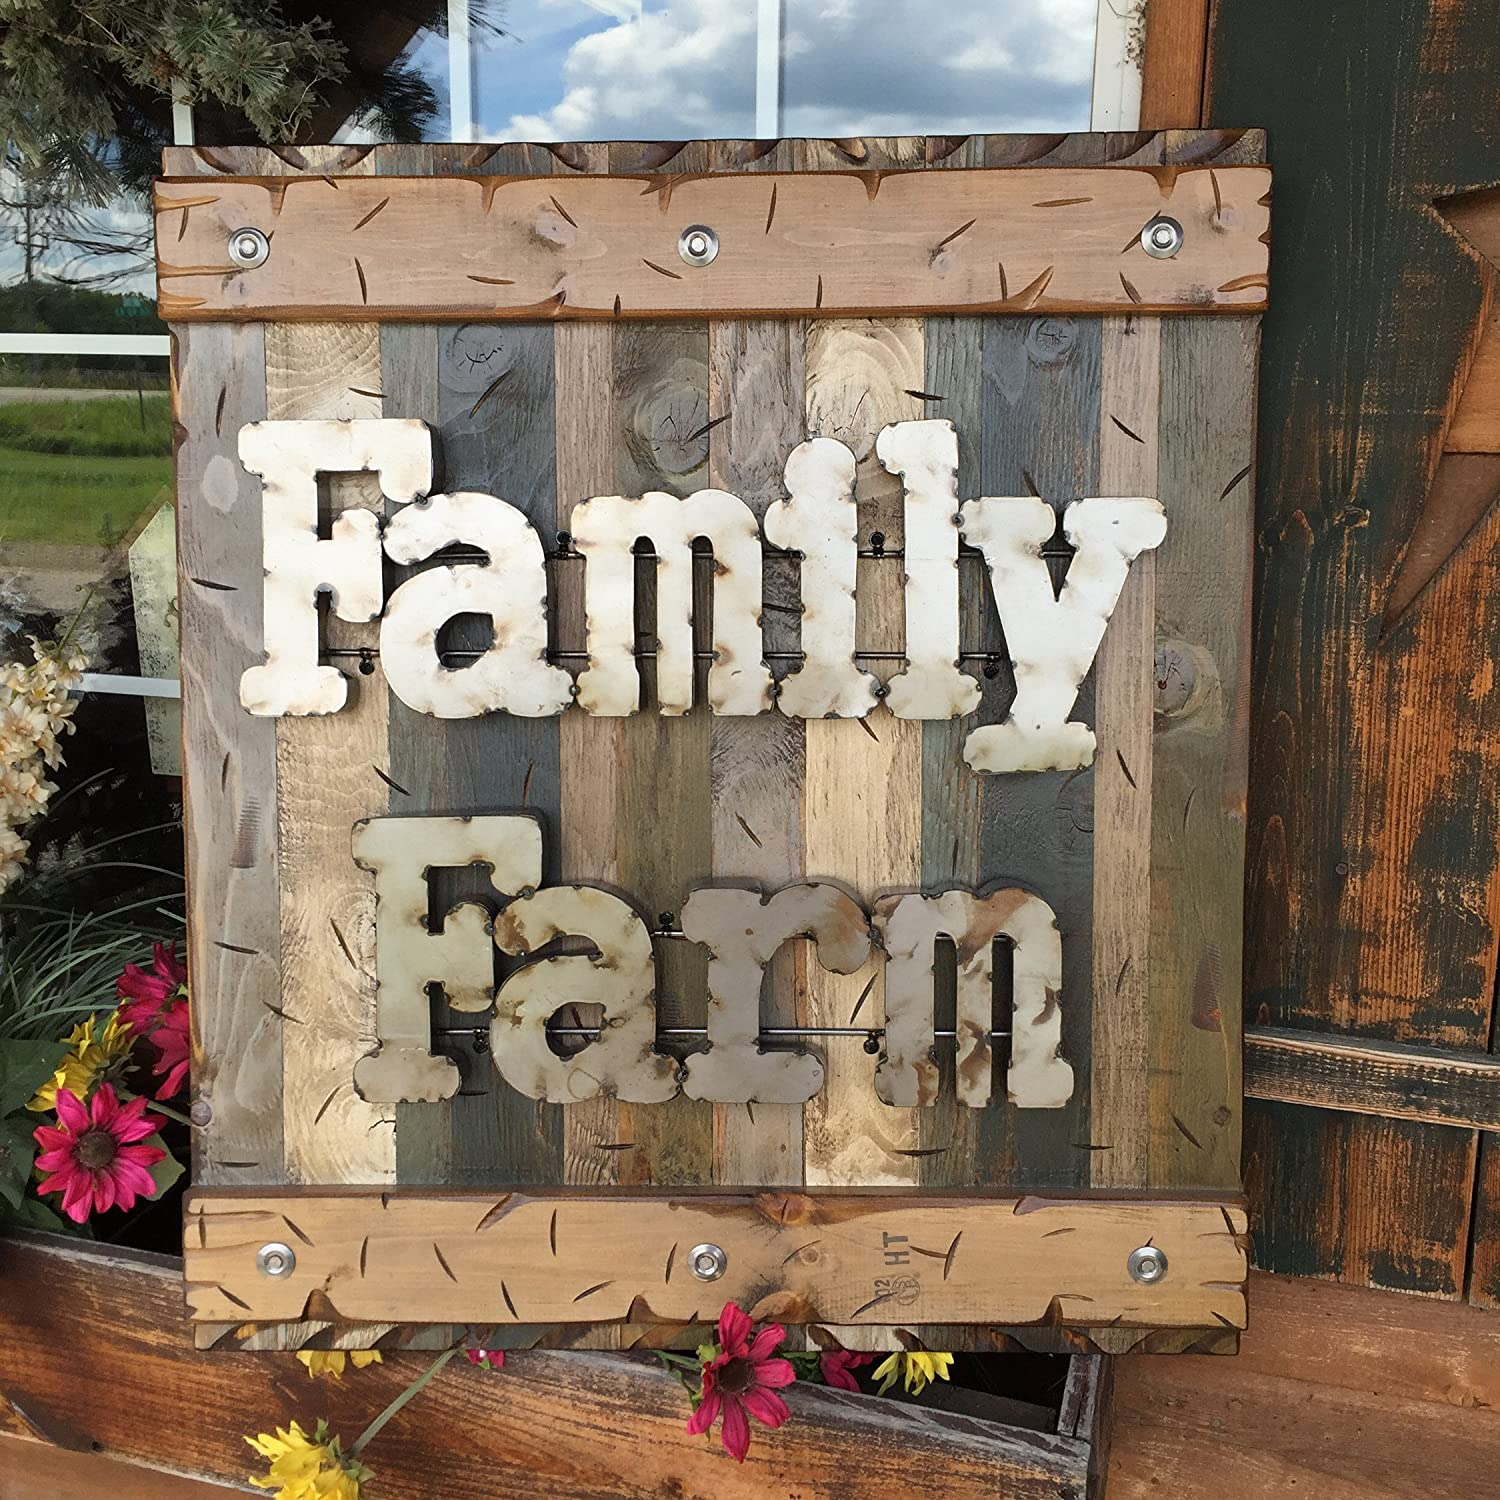 Amazon Com Farmhouse Wall Decor Sign Family Farm Sign Decor Reclaimed Rustic Pallet Wood Log Cabin Style 32 X 28 Shutter Tan Green Blue Wooden With Industrial Rustic Metal Letters Handmade